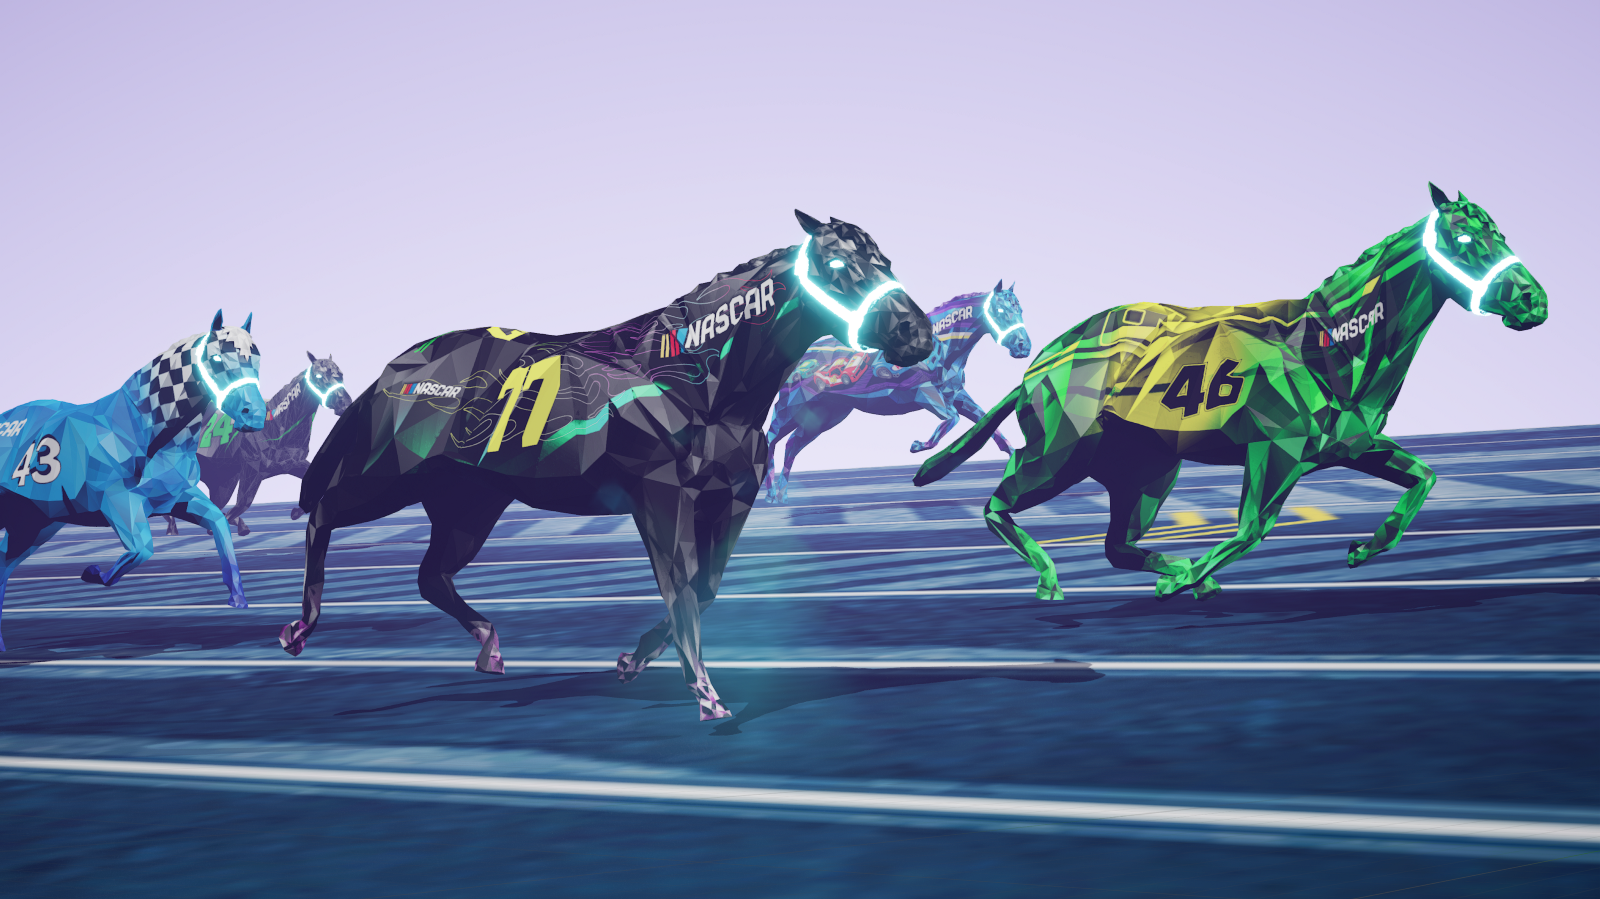 NASCAR links partnership with the startup behind a blockchain-based digital horse racing game